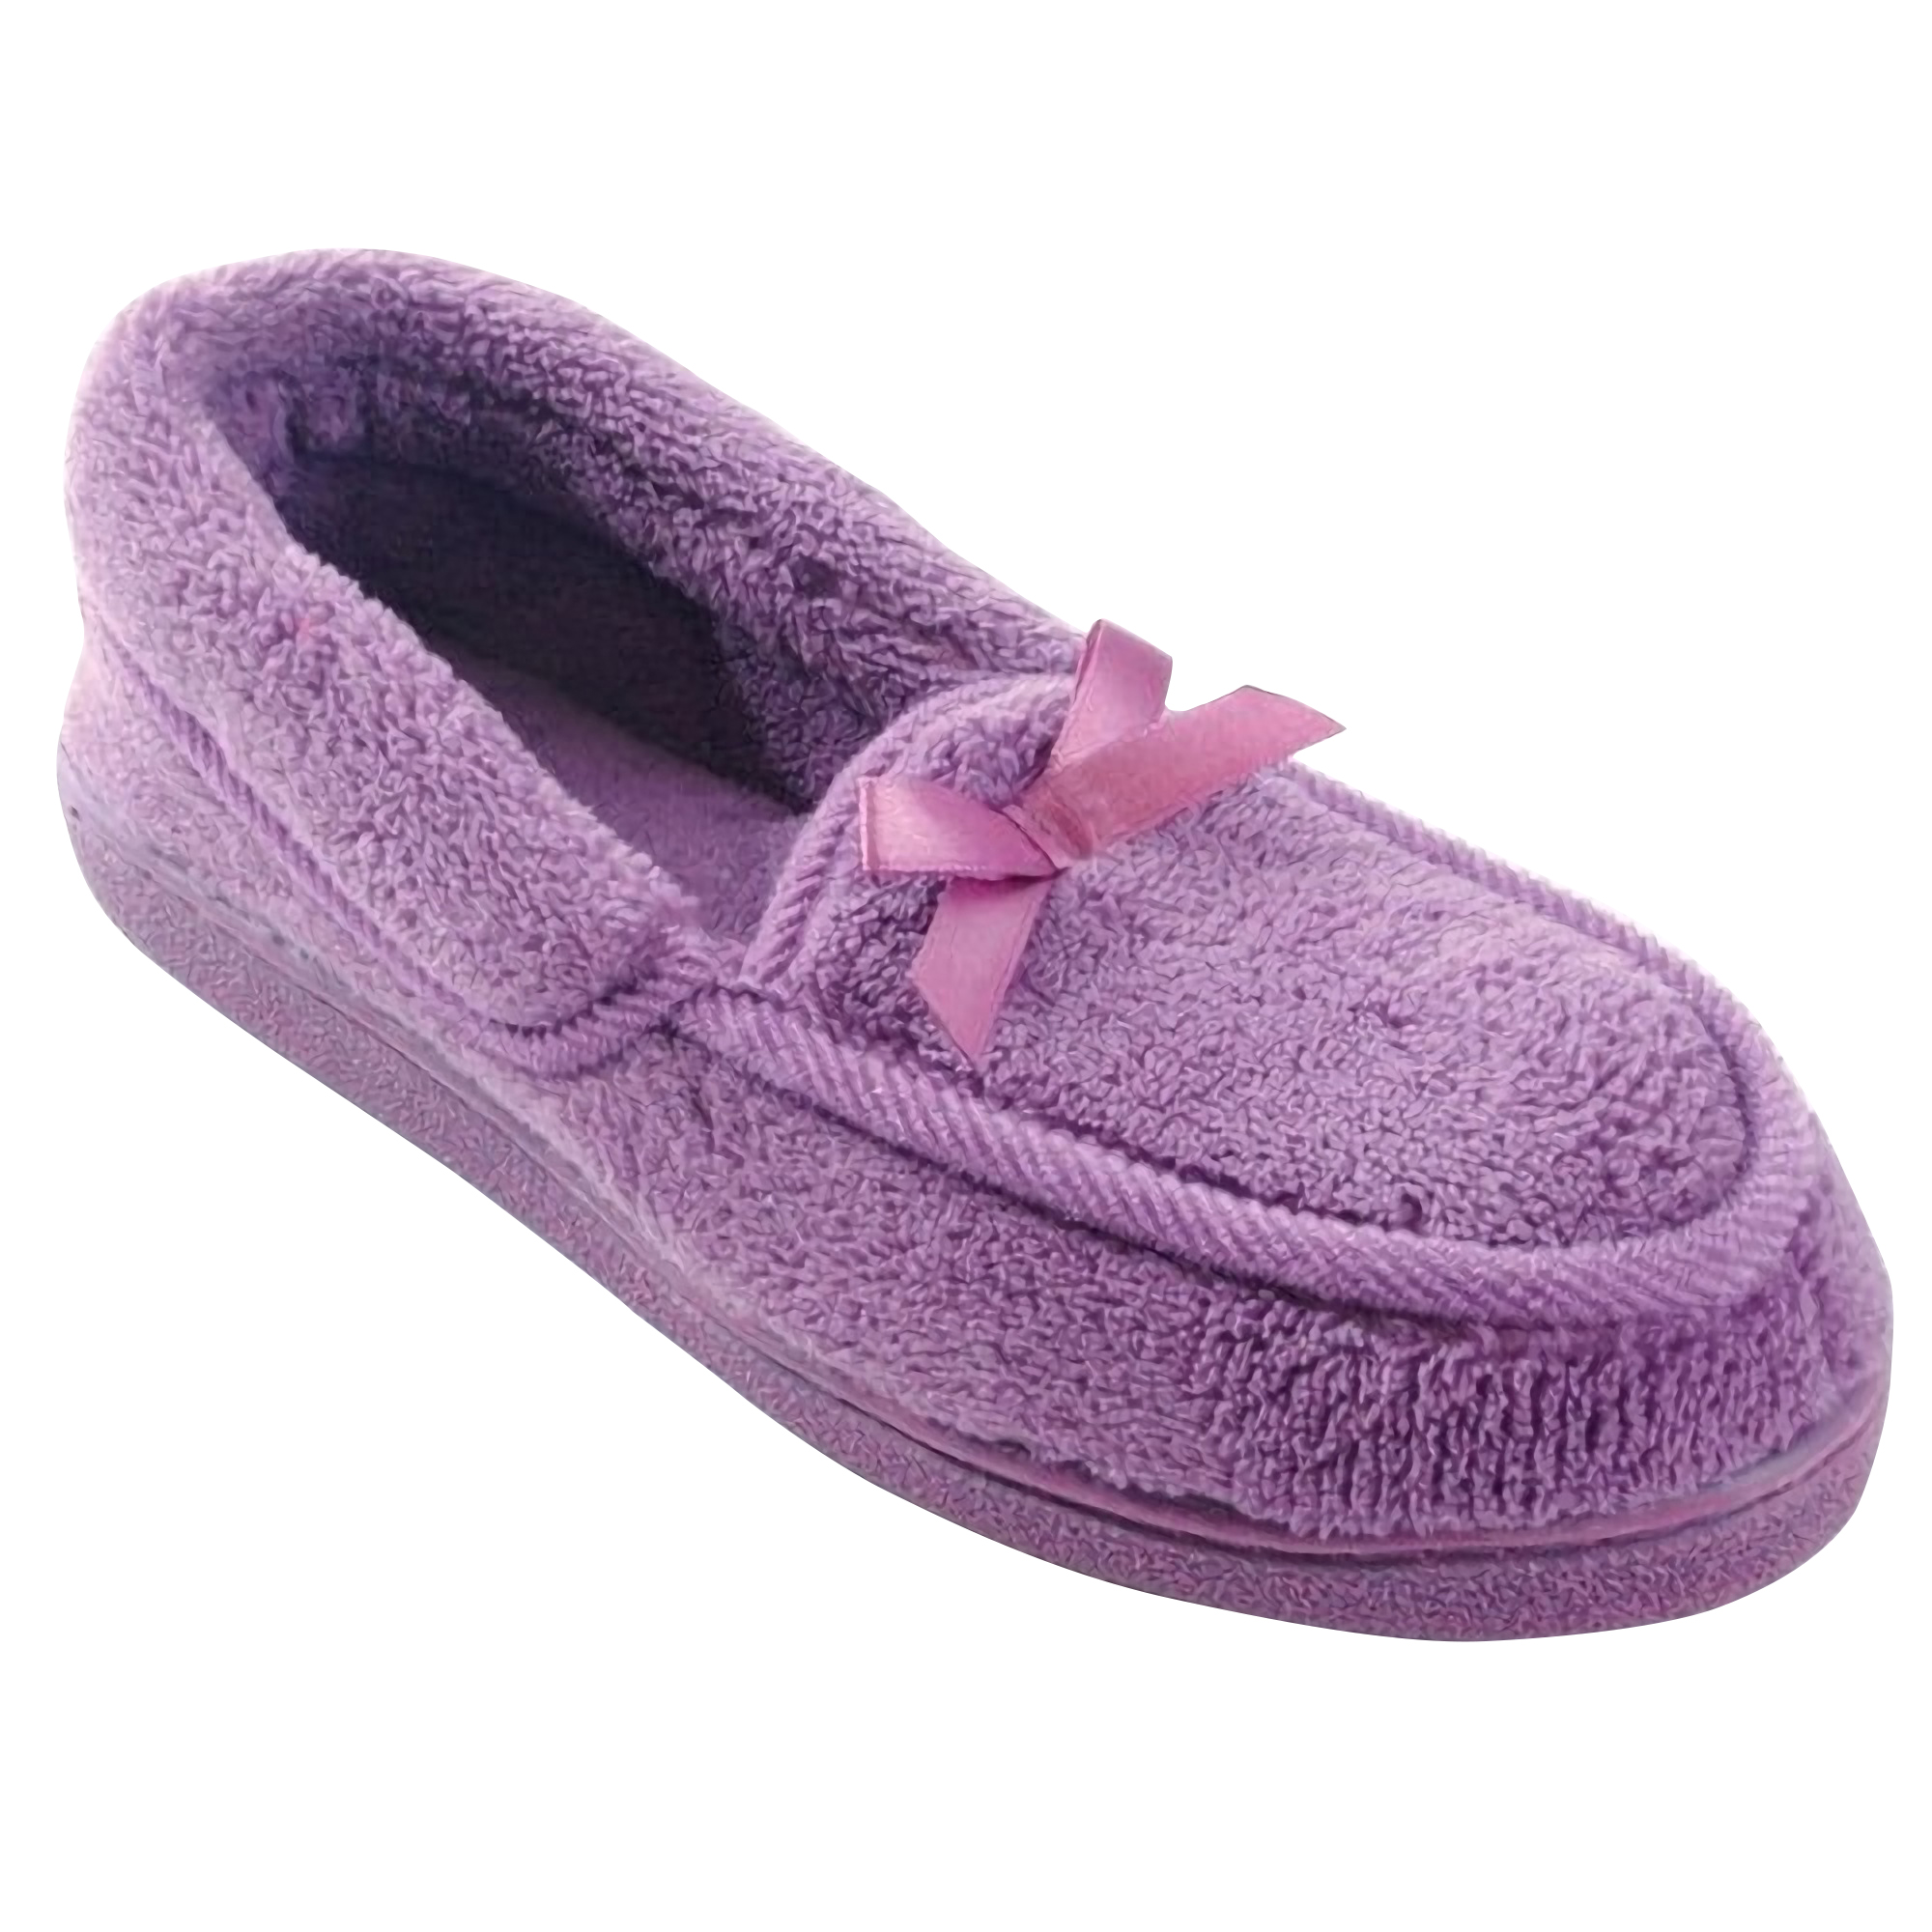 Womens/Ladies Classic Indoor House Slipper Shoes /Slippers